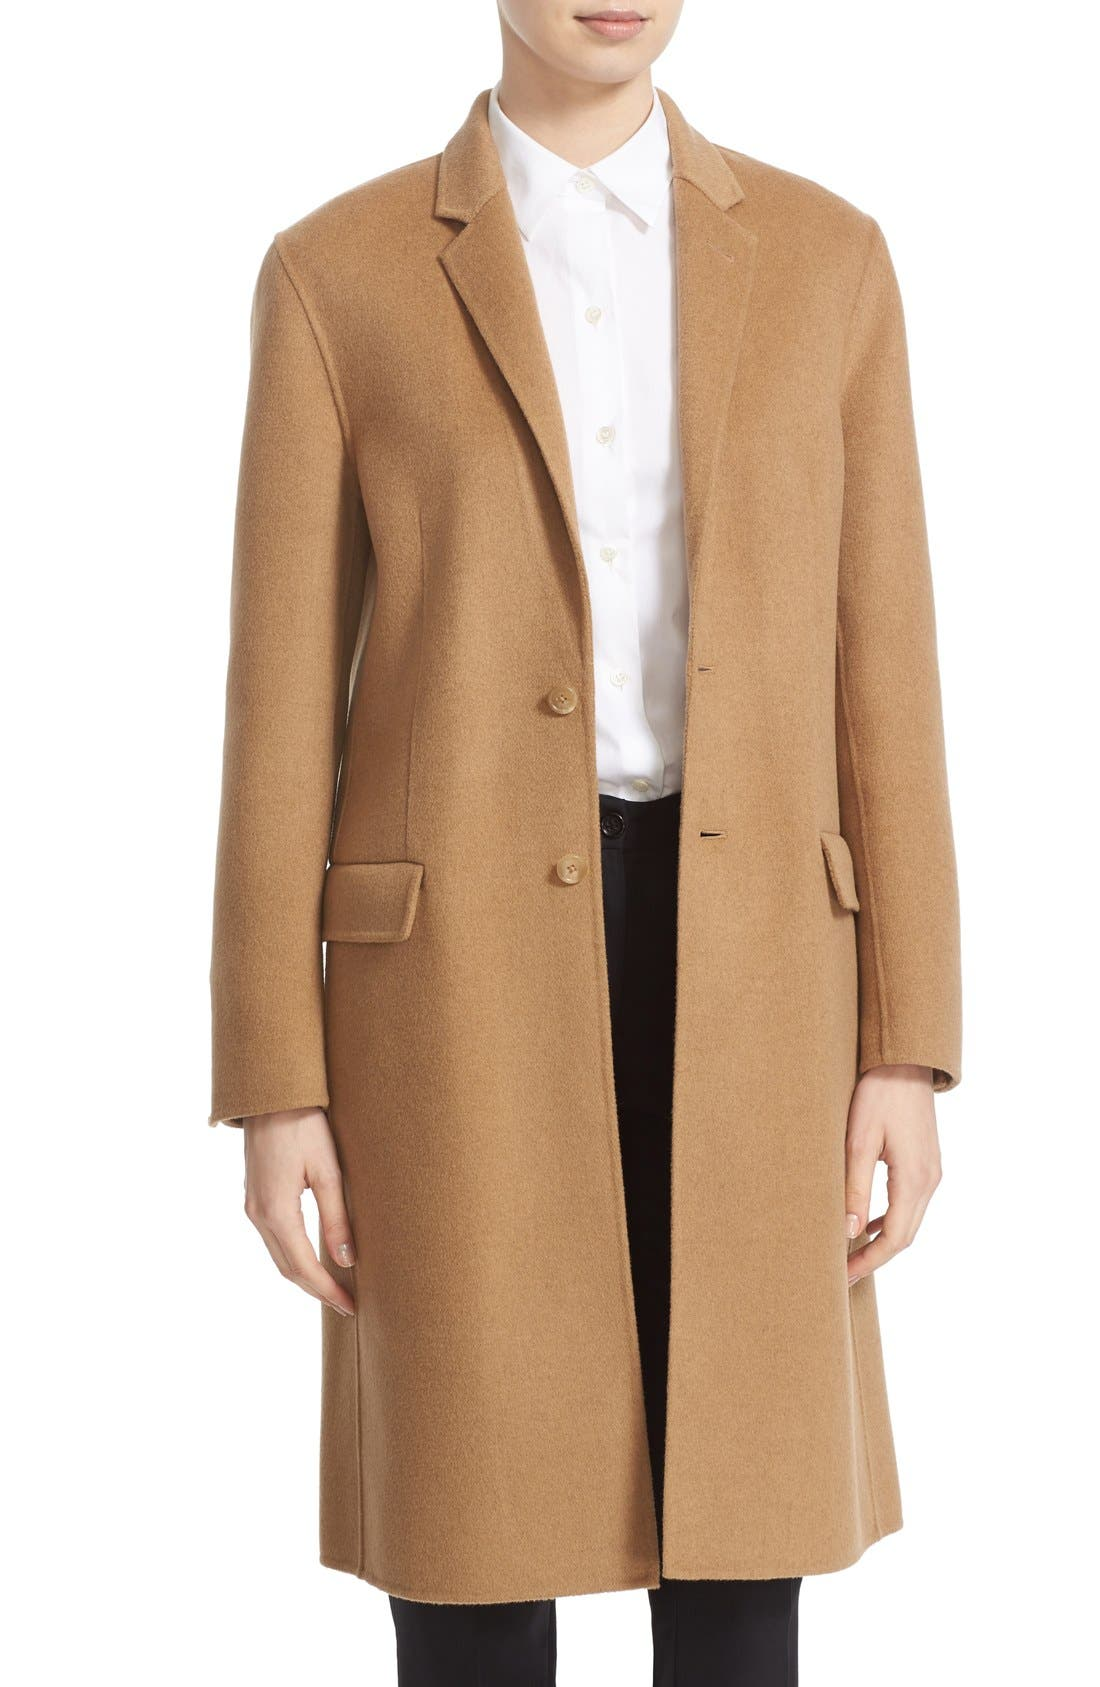 Alternate Image 1 Selected - JOSEPH 'Caversham' Double Face Wool & Cashmere Coat